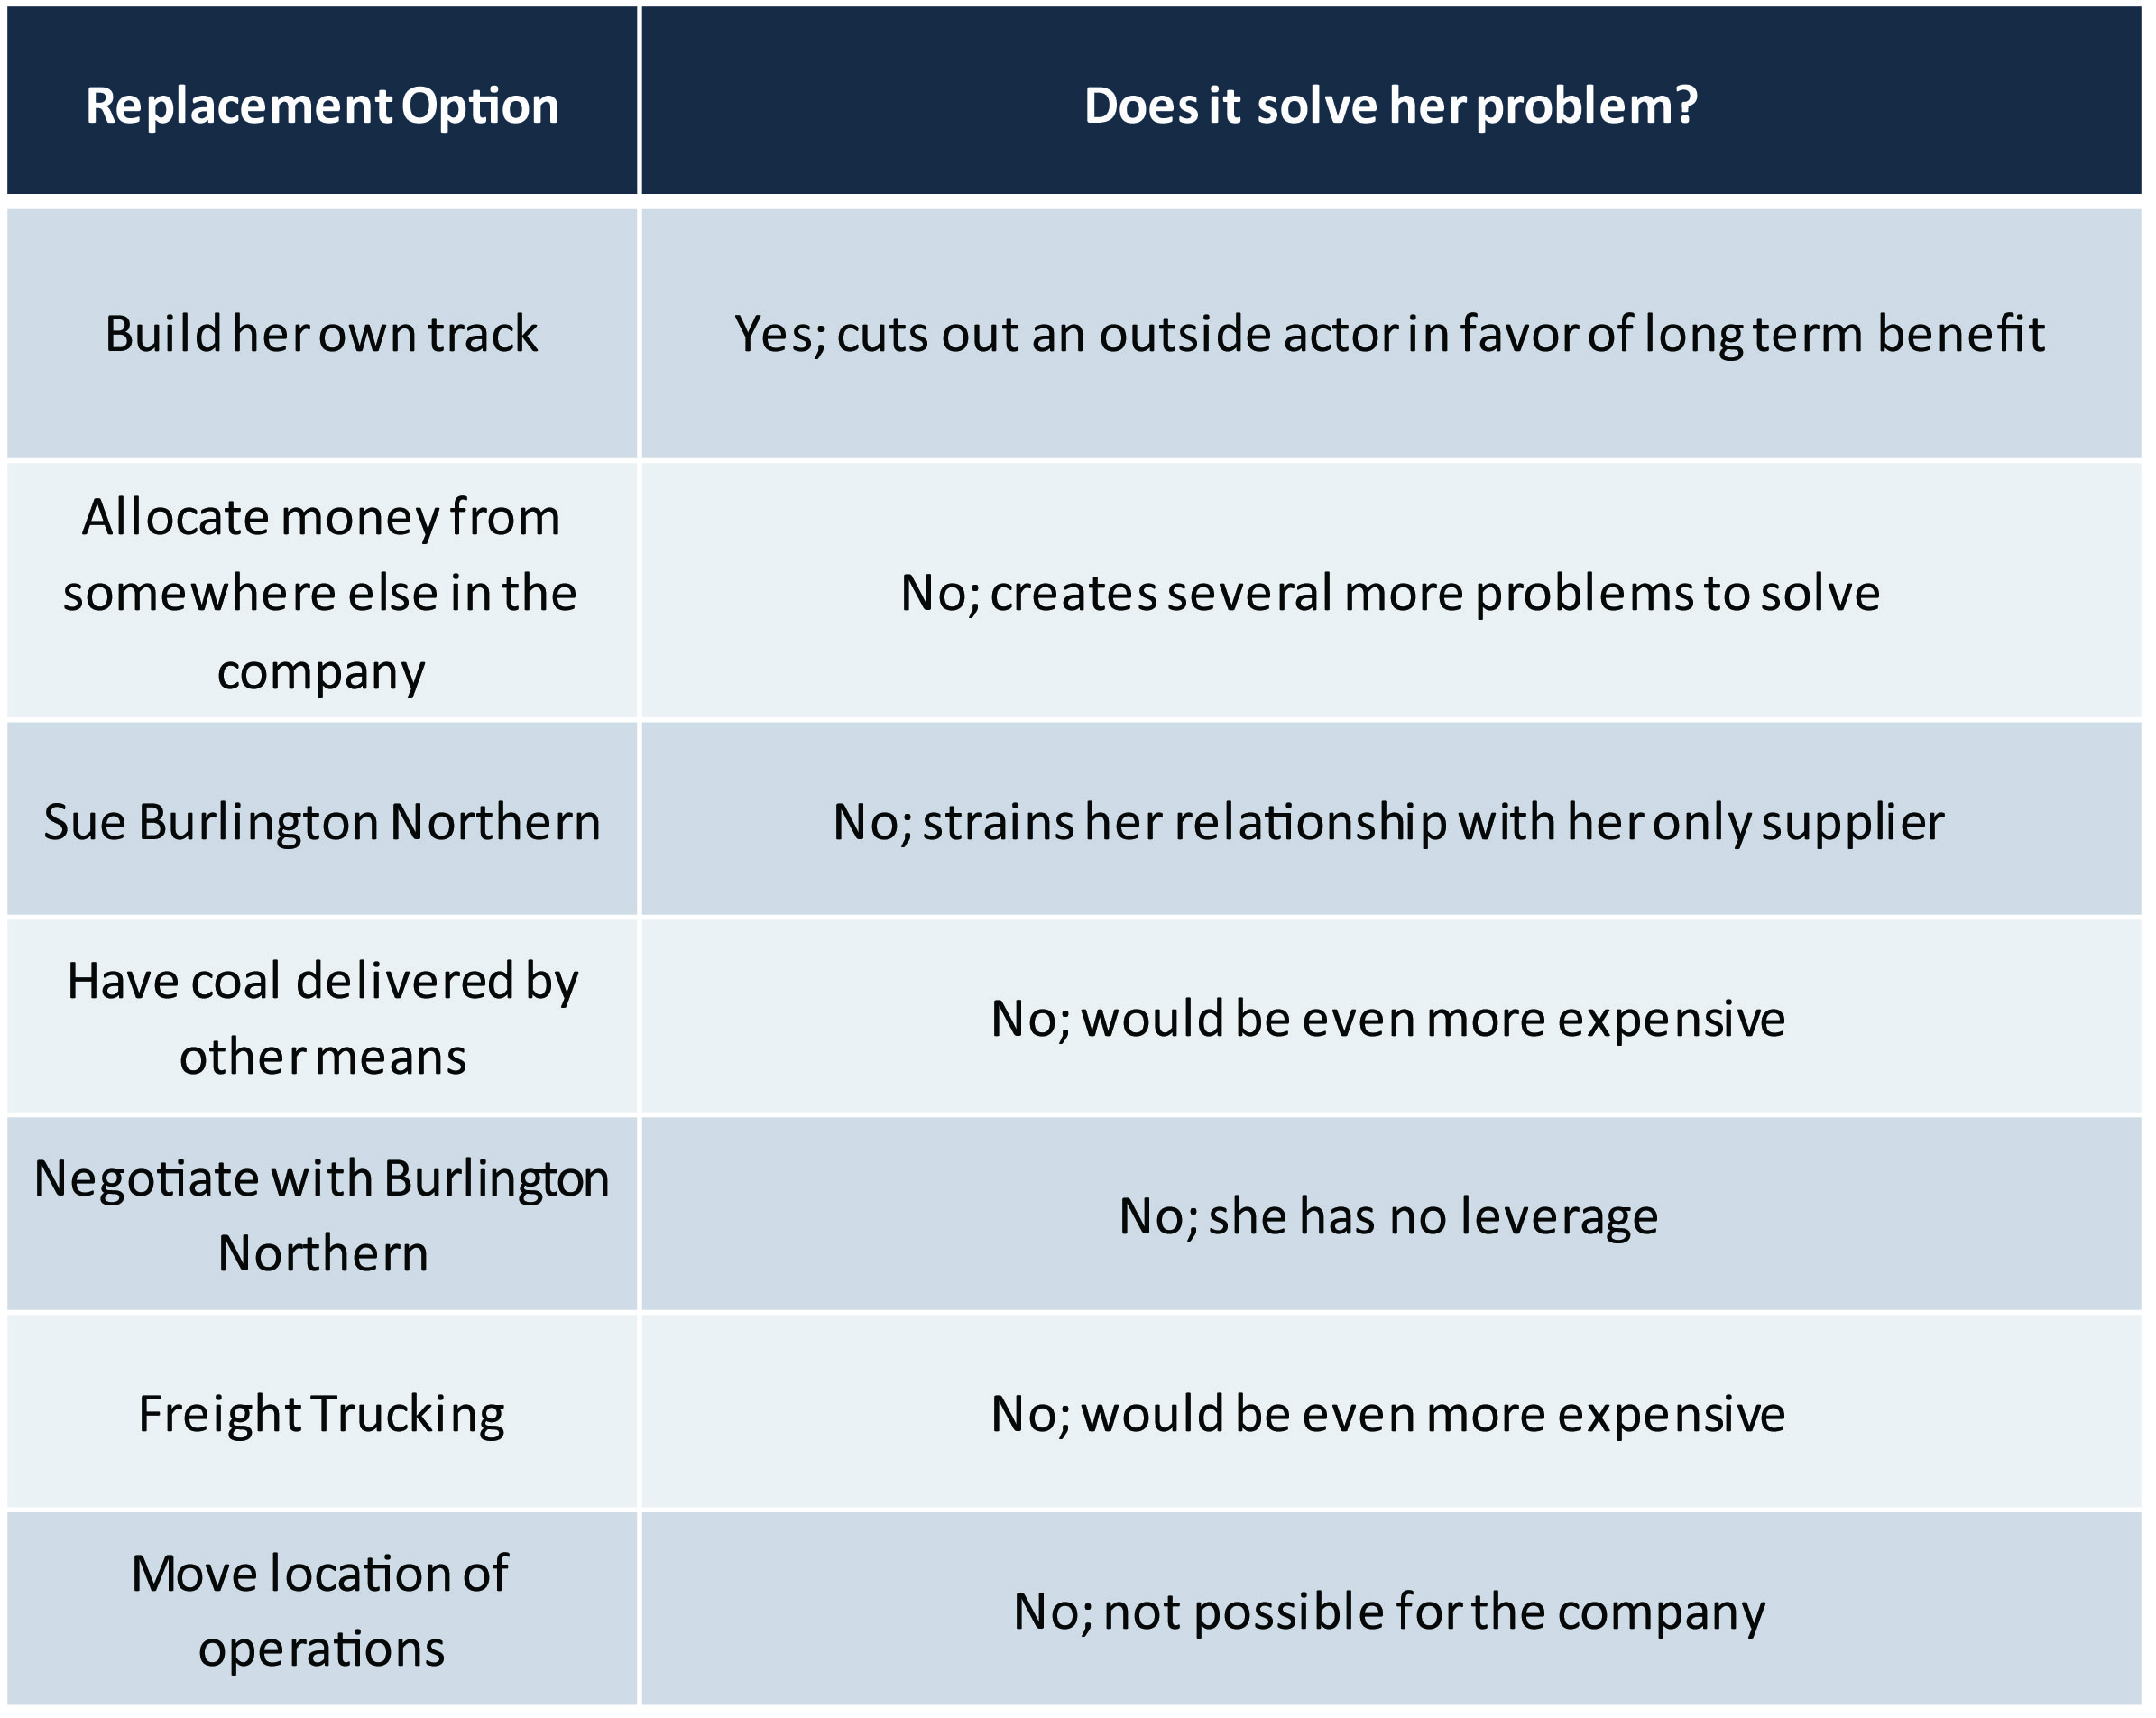 Coal Delivery Options-2.jpg